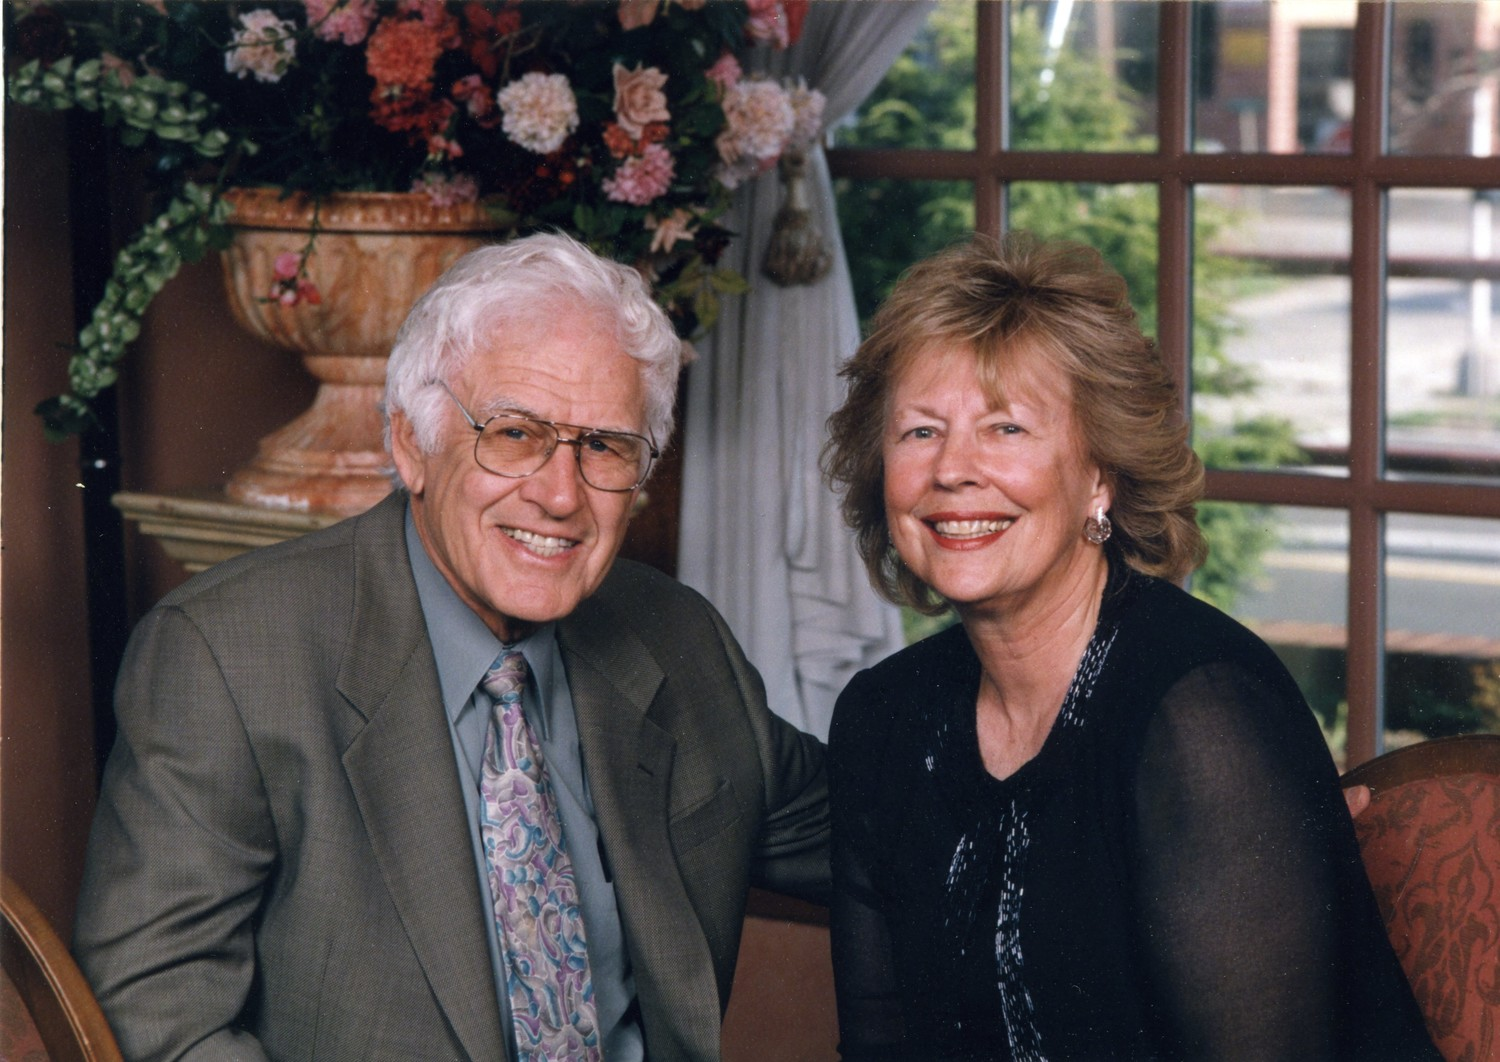 Sanford and Nancy Epstein were married for 66 years and raised their family in Glen Cove.